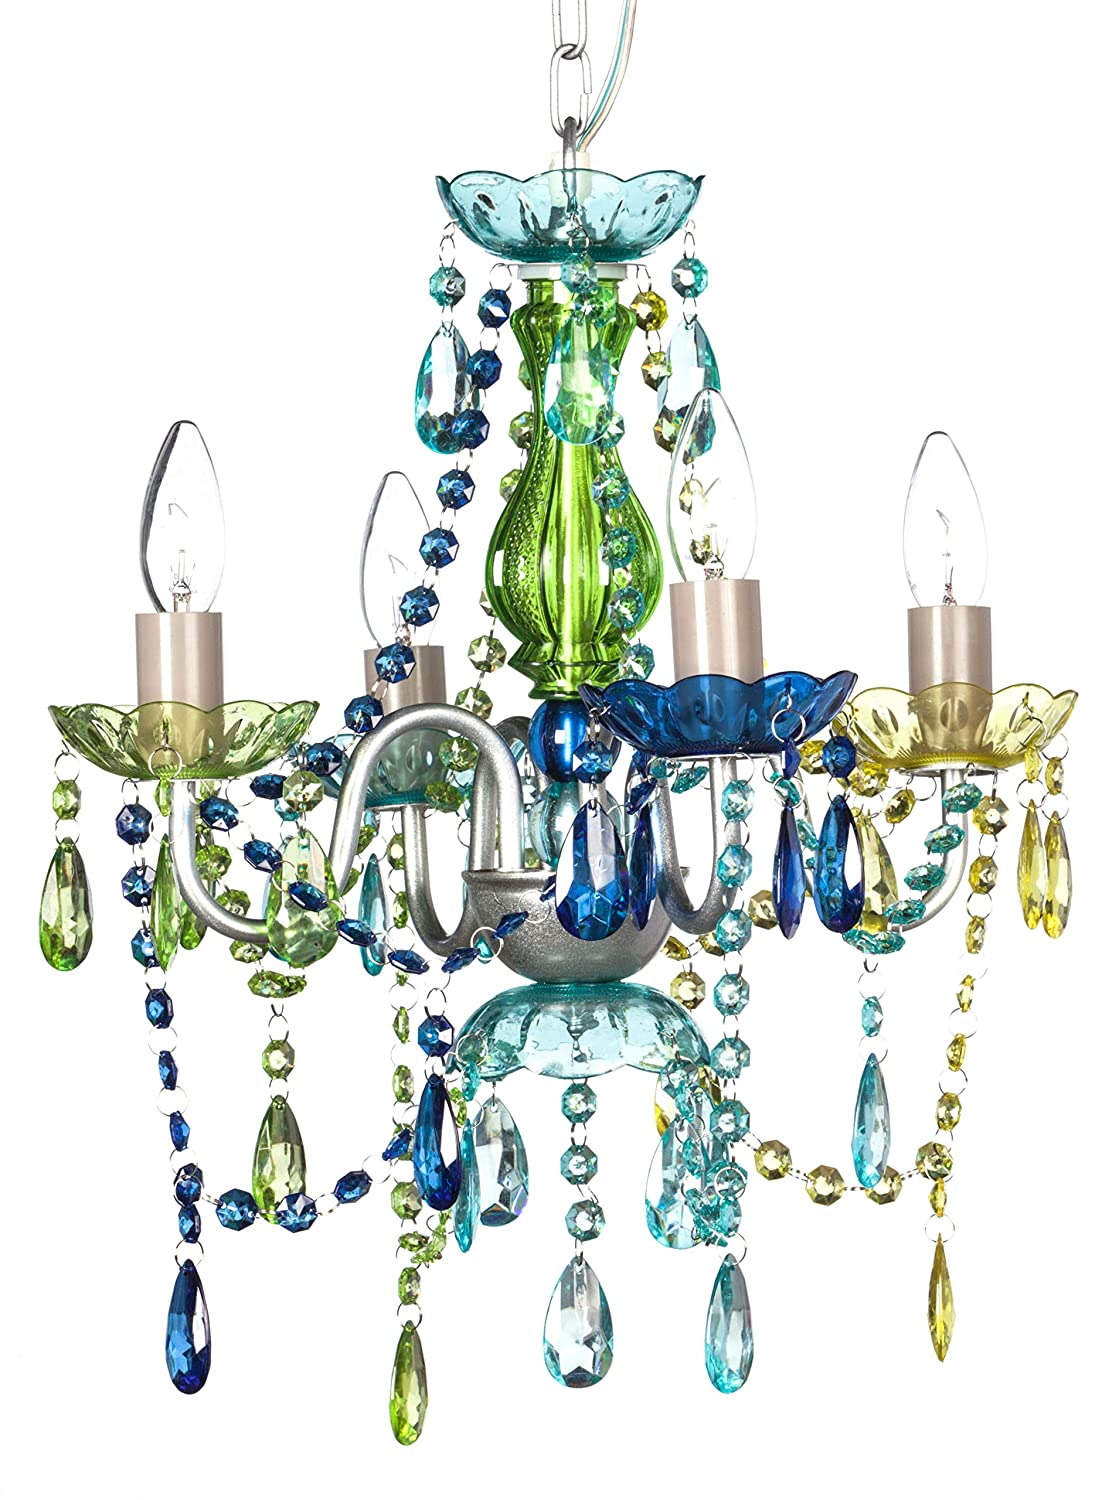 """The Original Gypsy Color 4 Light Small Gypsy Chandelier for H 17.5"""" x W 15"""", Silver Metal Frame with Blue Green Multicolor Acrylic Crystals"""